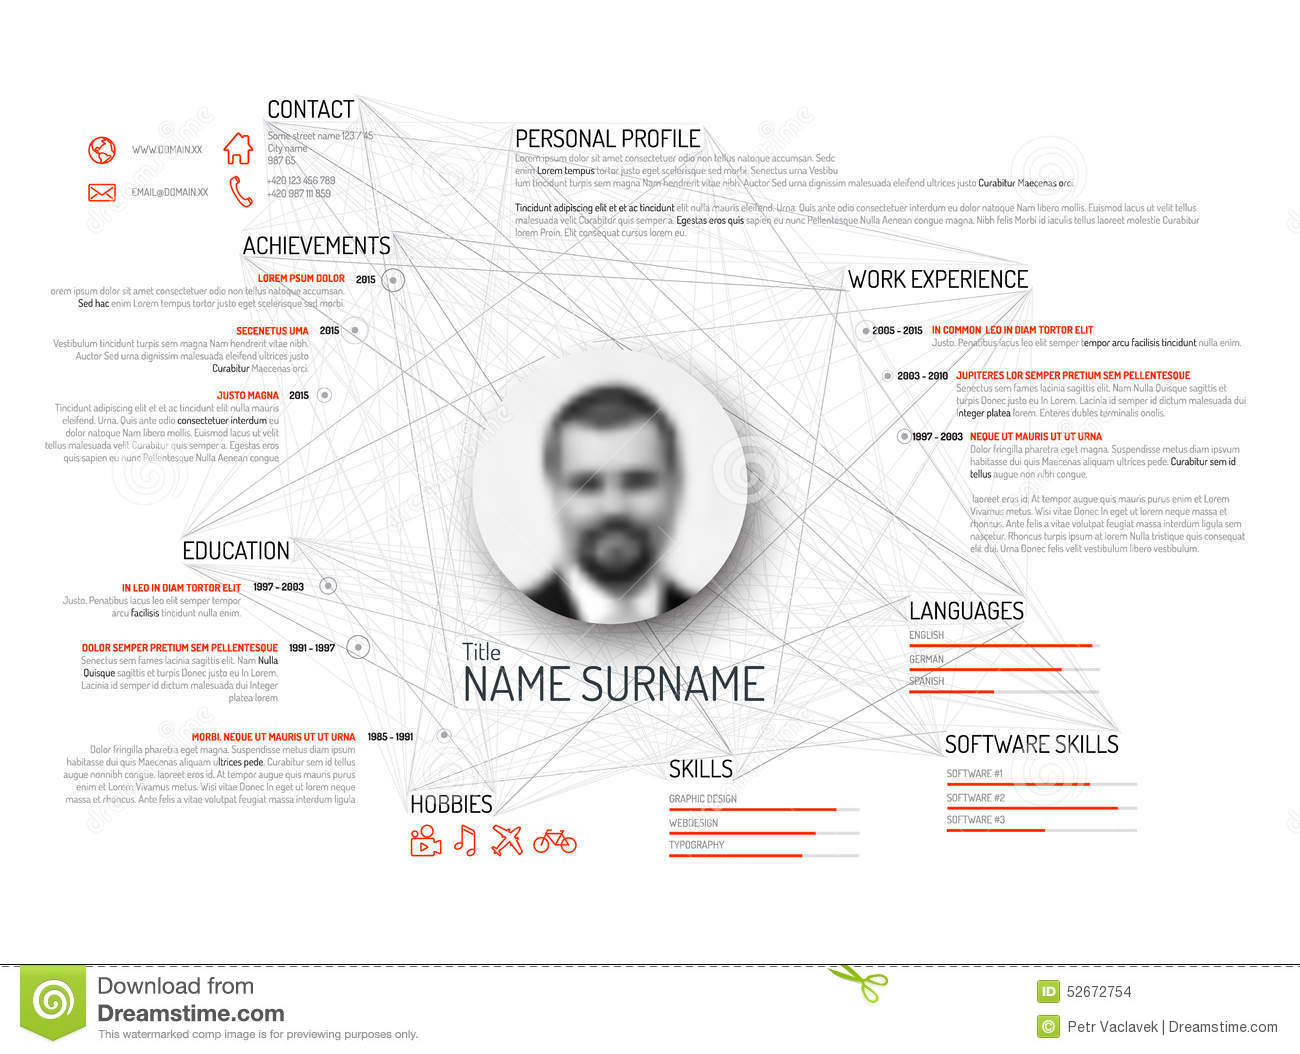 Att Architekten Original Cv Resume Template Stock Vector Image 52672754